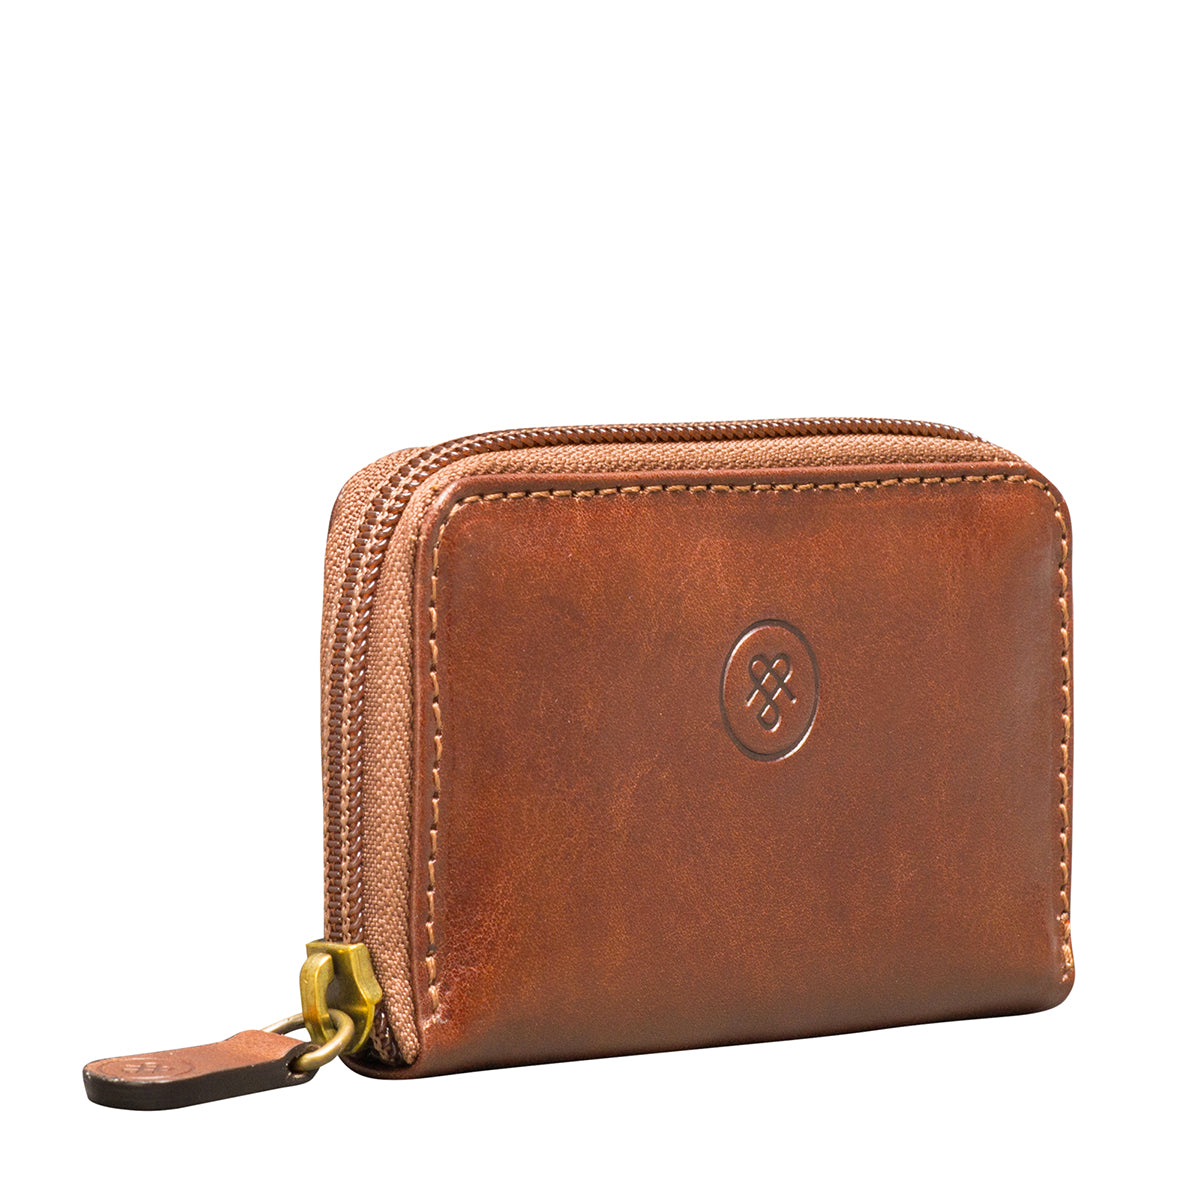 Image 2 of the 'Vinci' Chestnut Veg-Tanned Leather Key Wallet